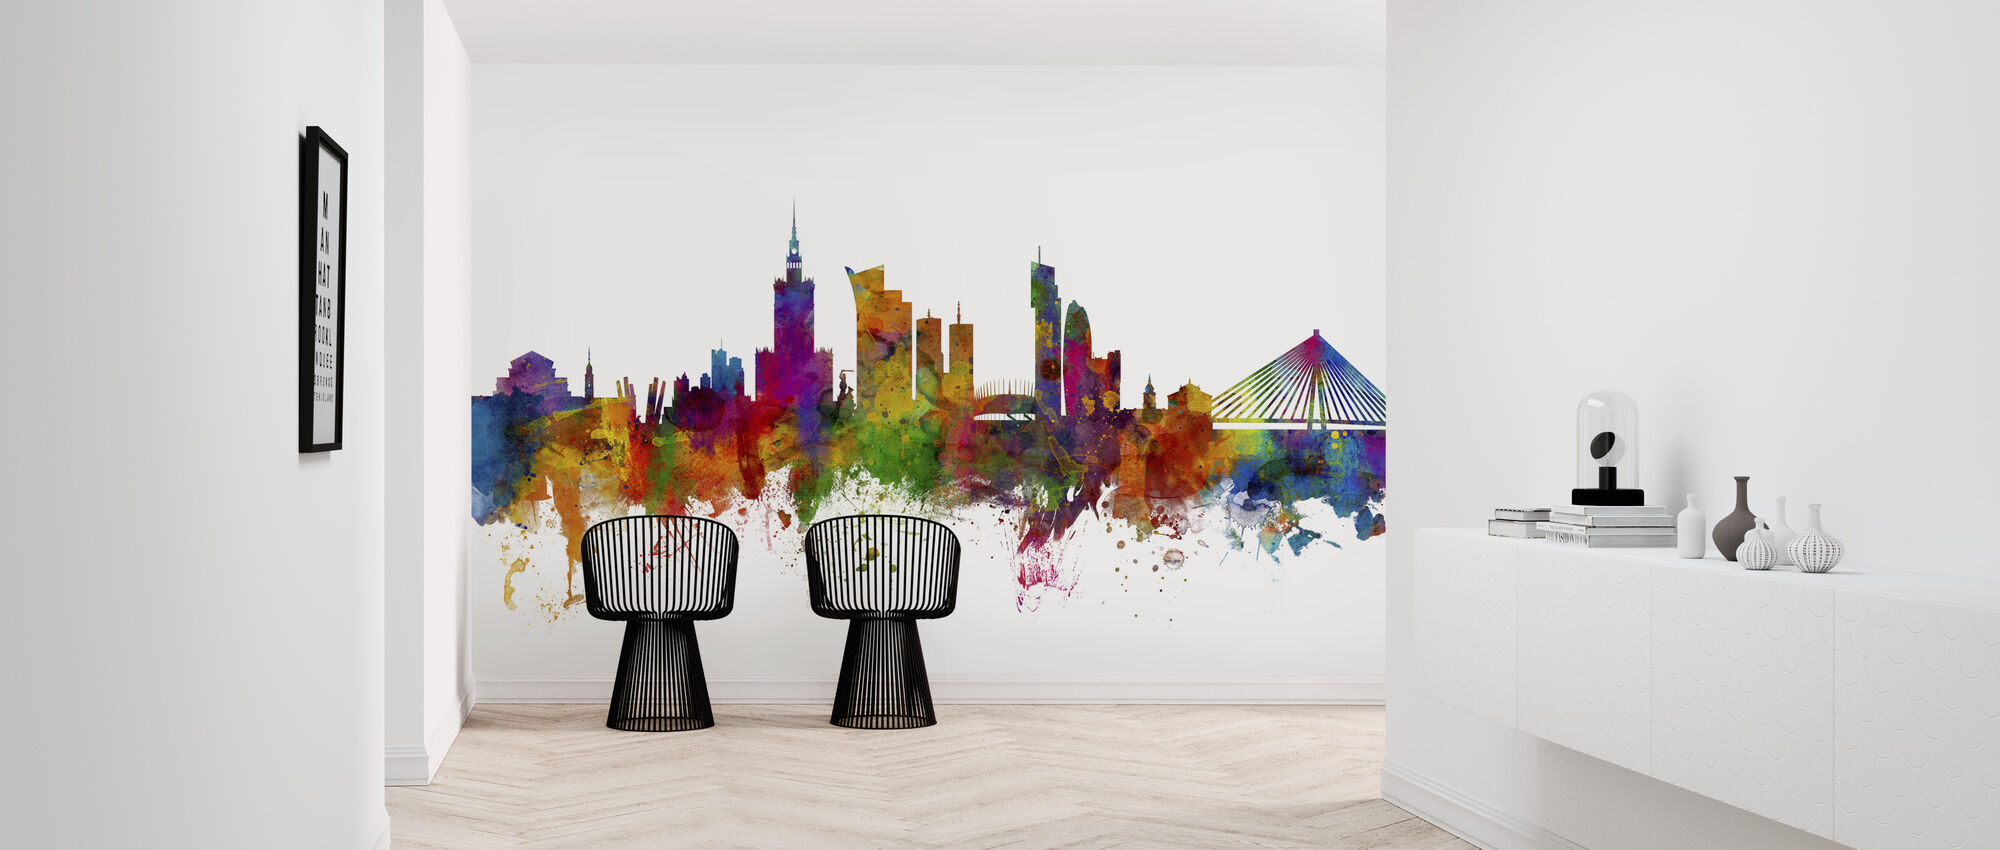 Warsaw Skyline - Wallpaper - Hallway